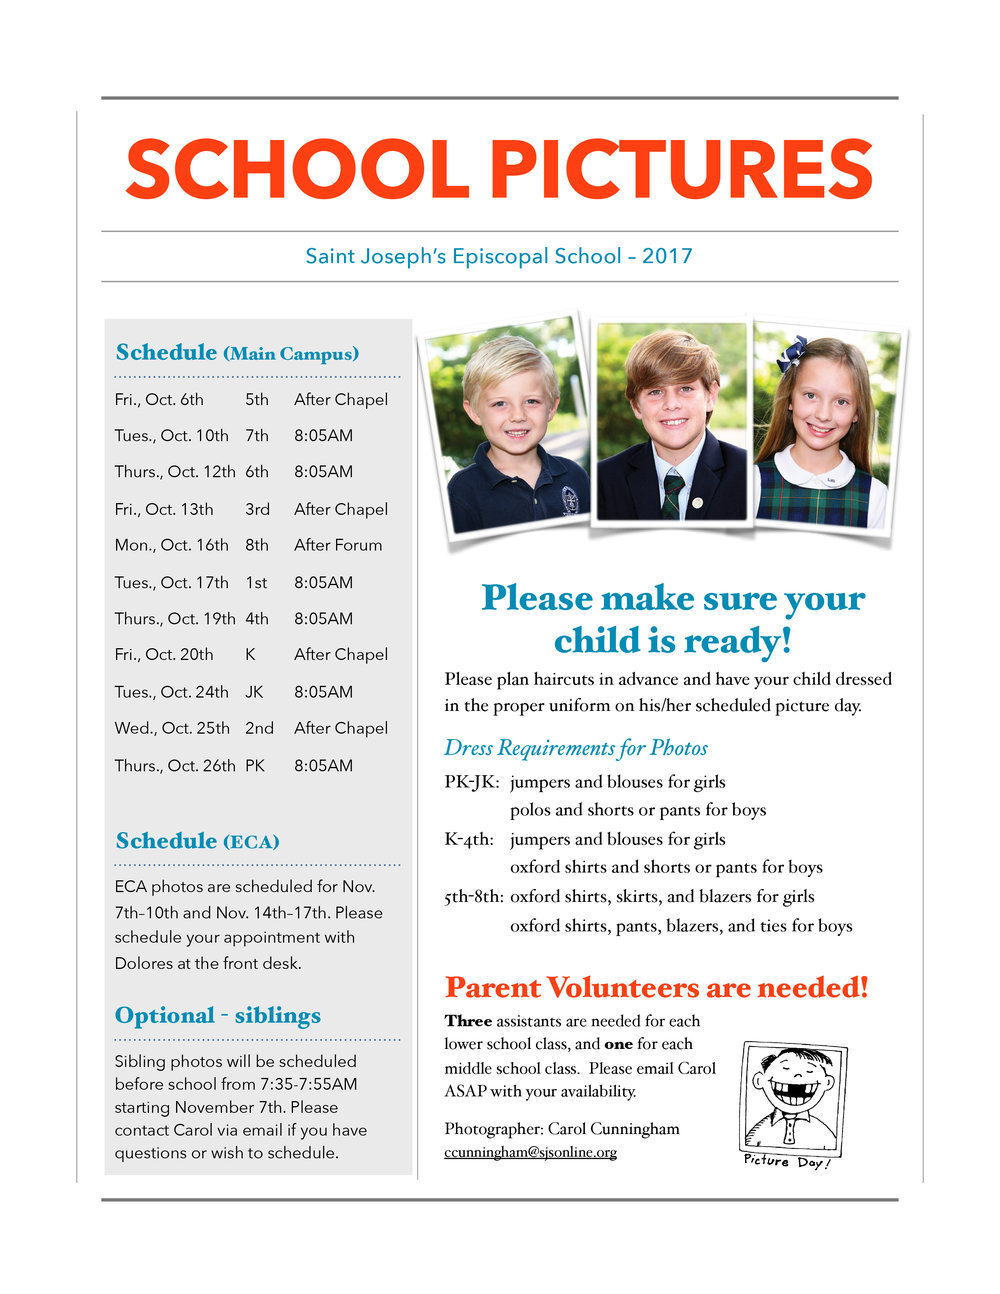 school picture schedule 2017.jpg